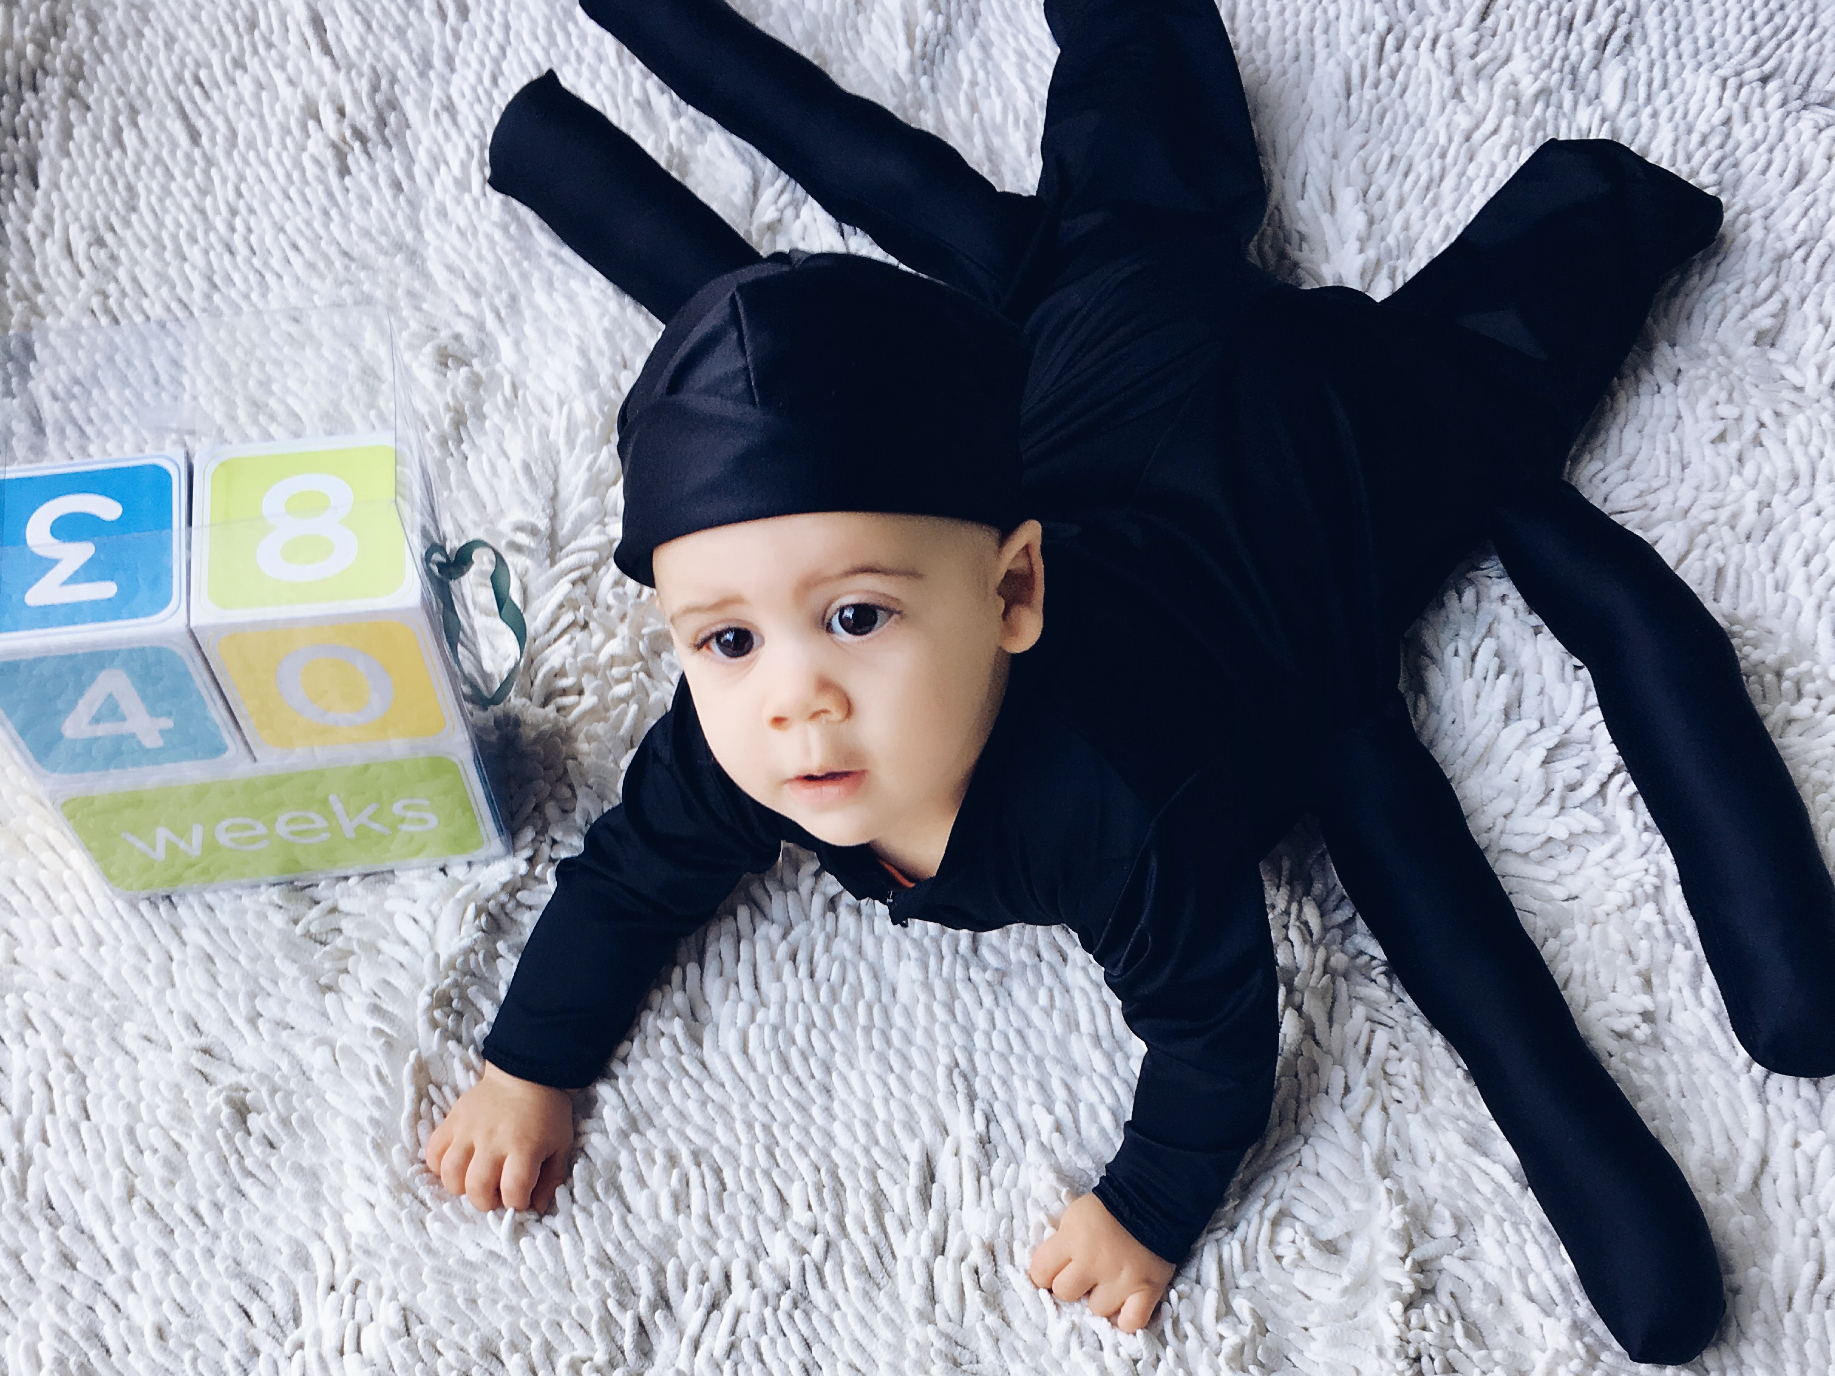 - A Fall photo shoot wouldn't be complete without a peek at his Halloween costume. Had to lay him on his belly to show off those spider legs!